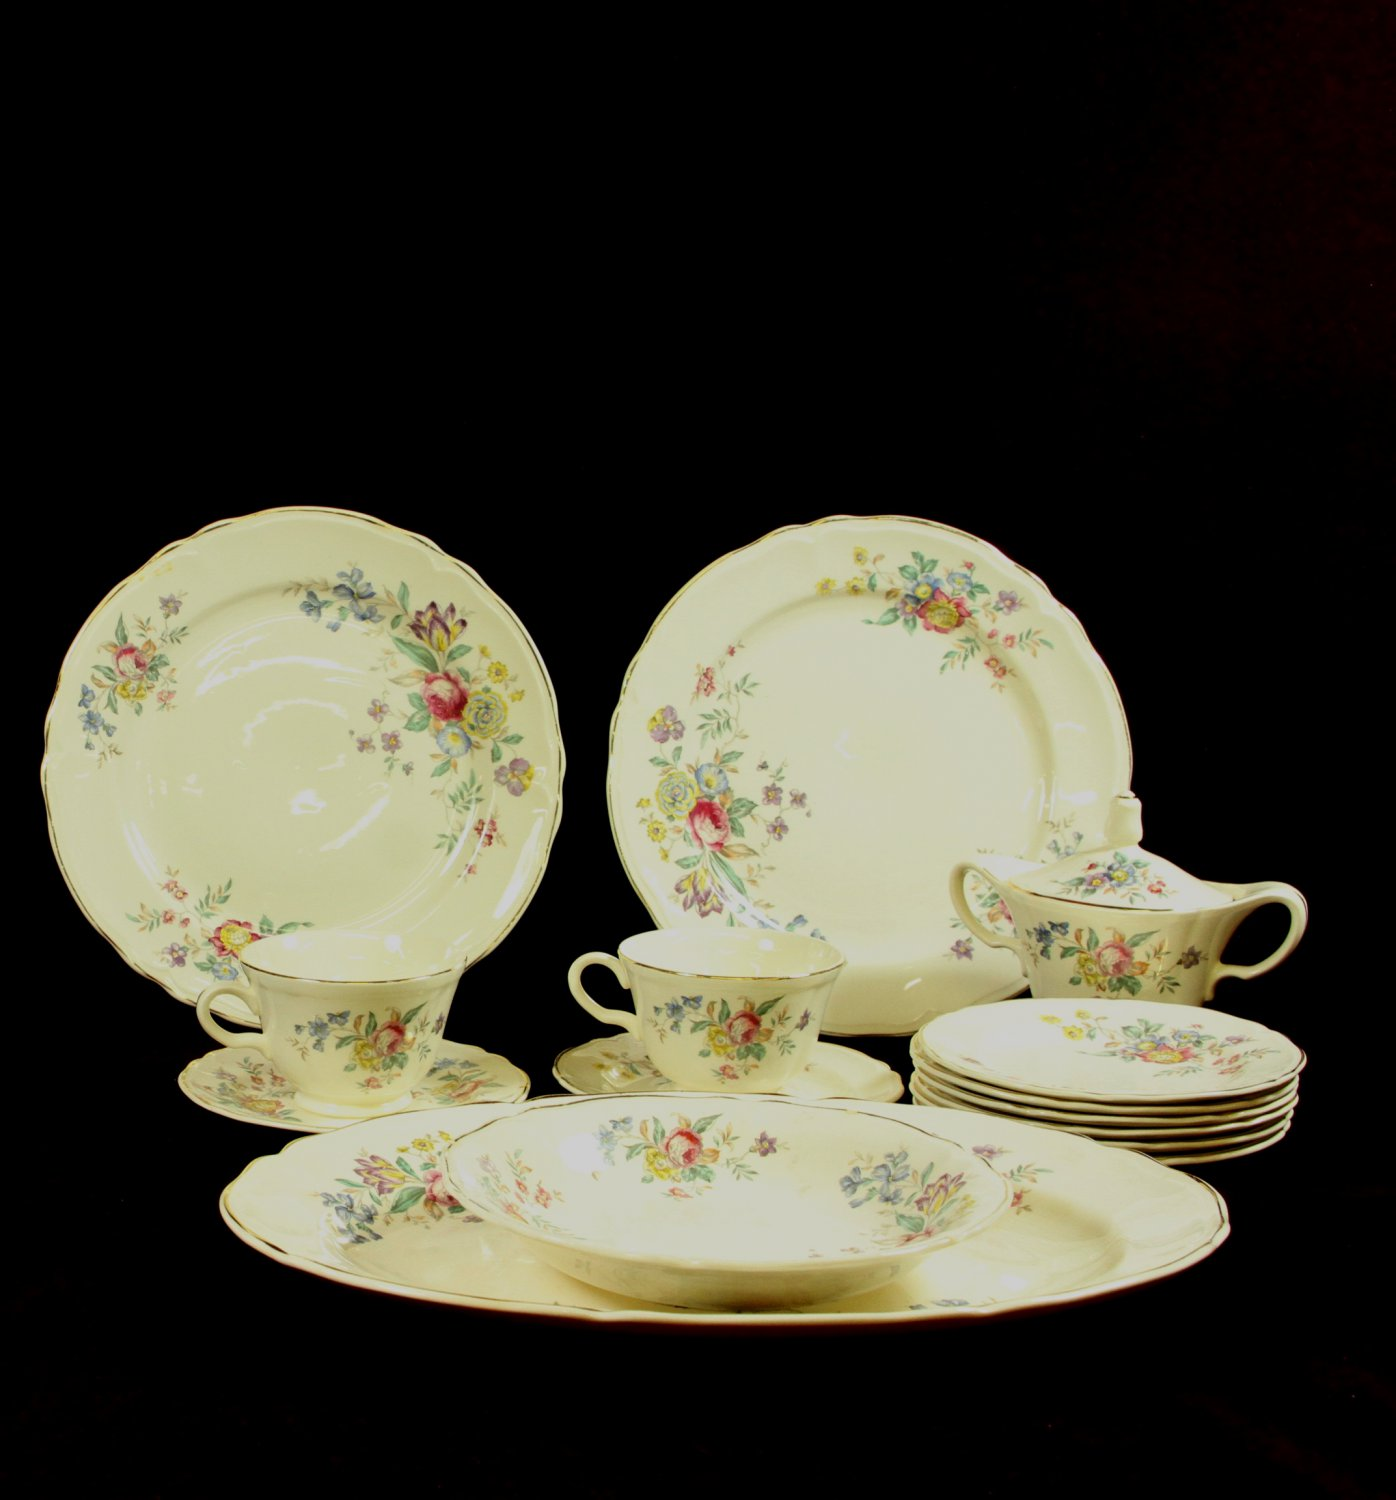 antique knowles china dishes semi vitreous 15 piece set